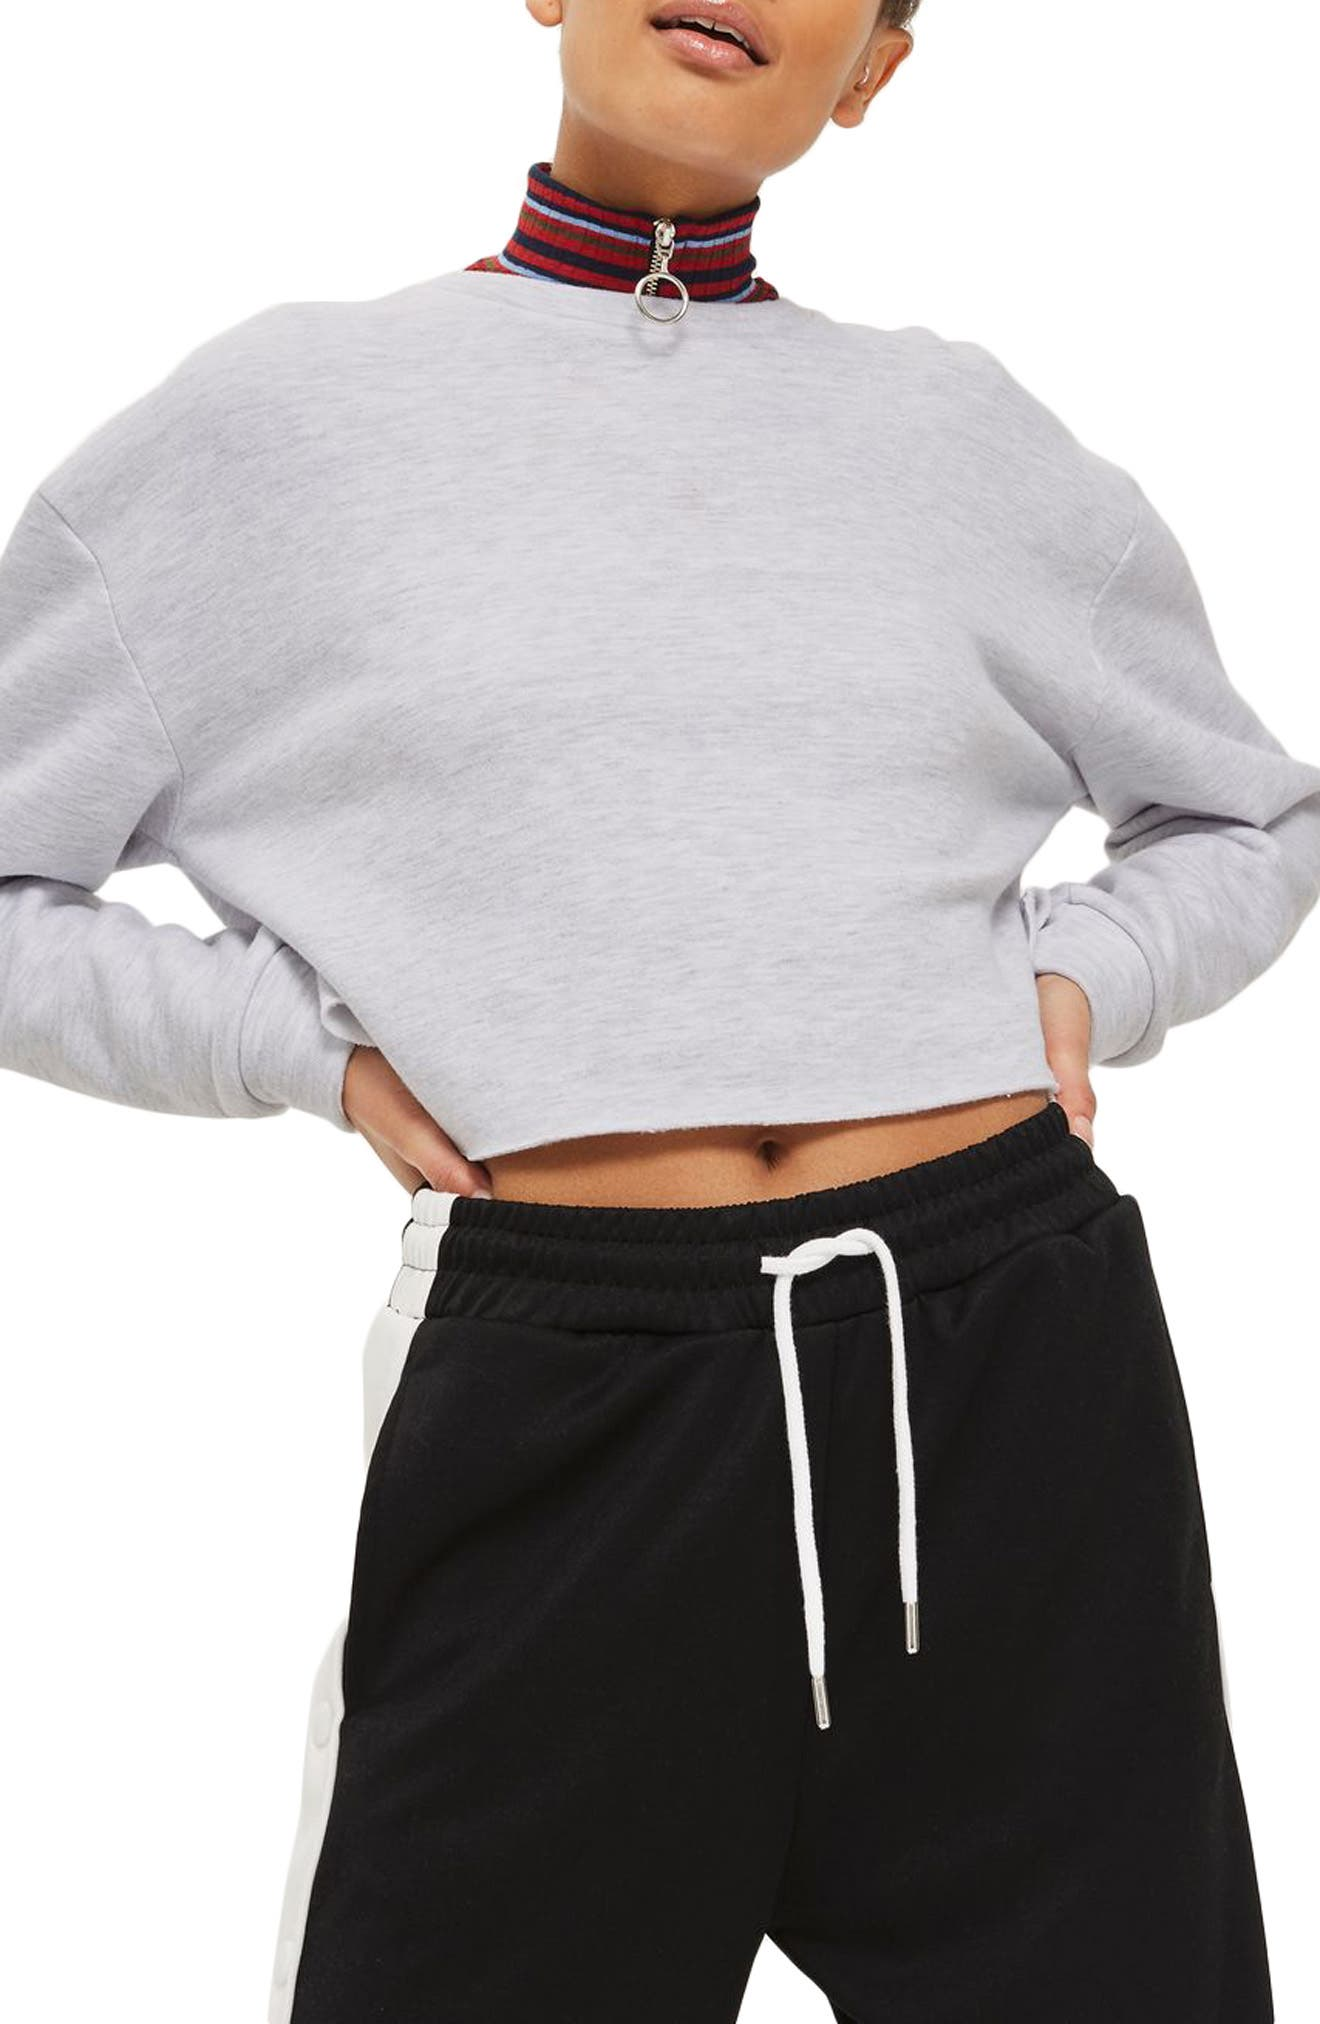 Crop Sweatshirt,                             Main thumbnail 1, color,                             Grey Marl